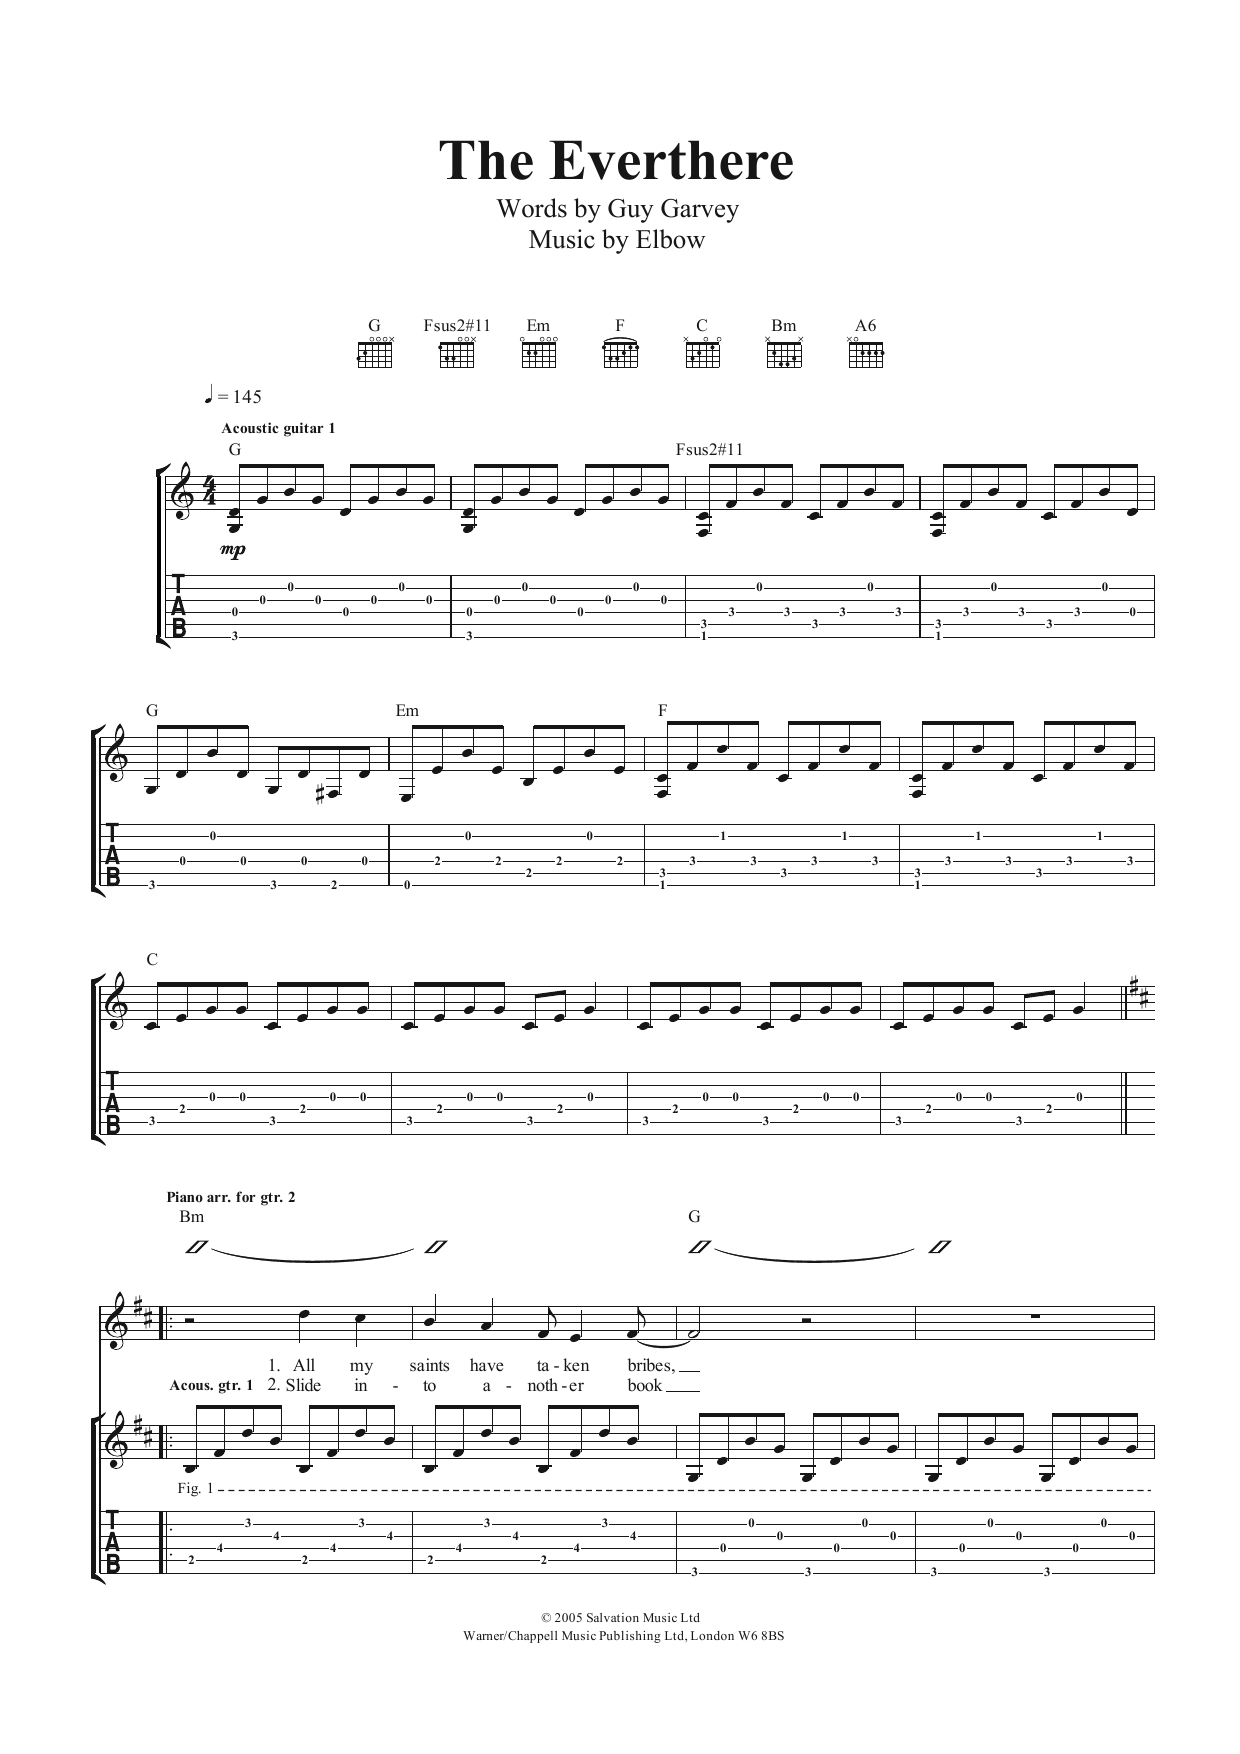 The Everthere Sheet Music